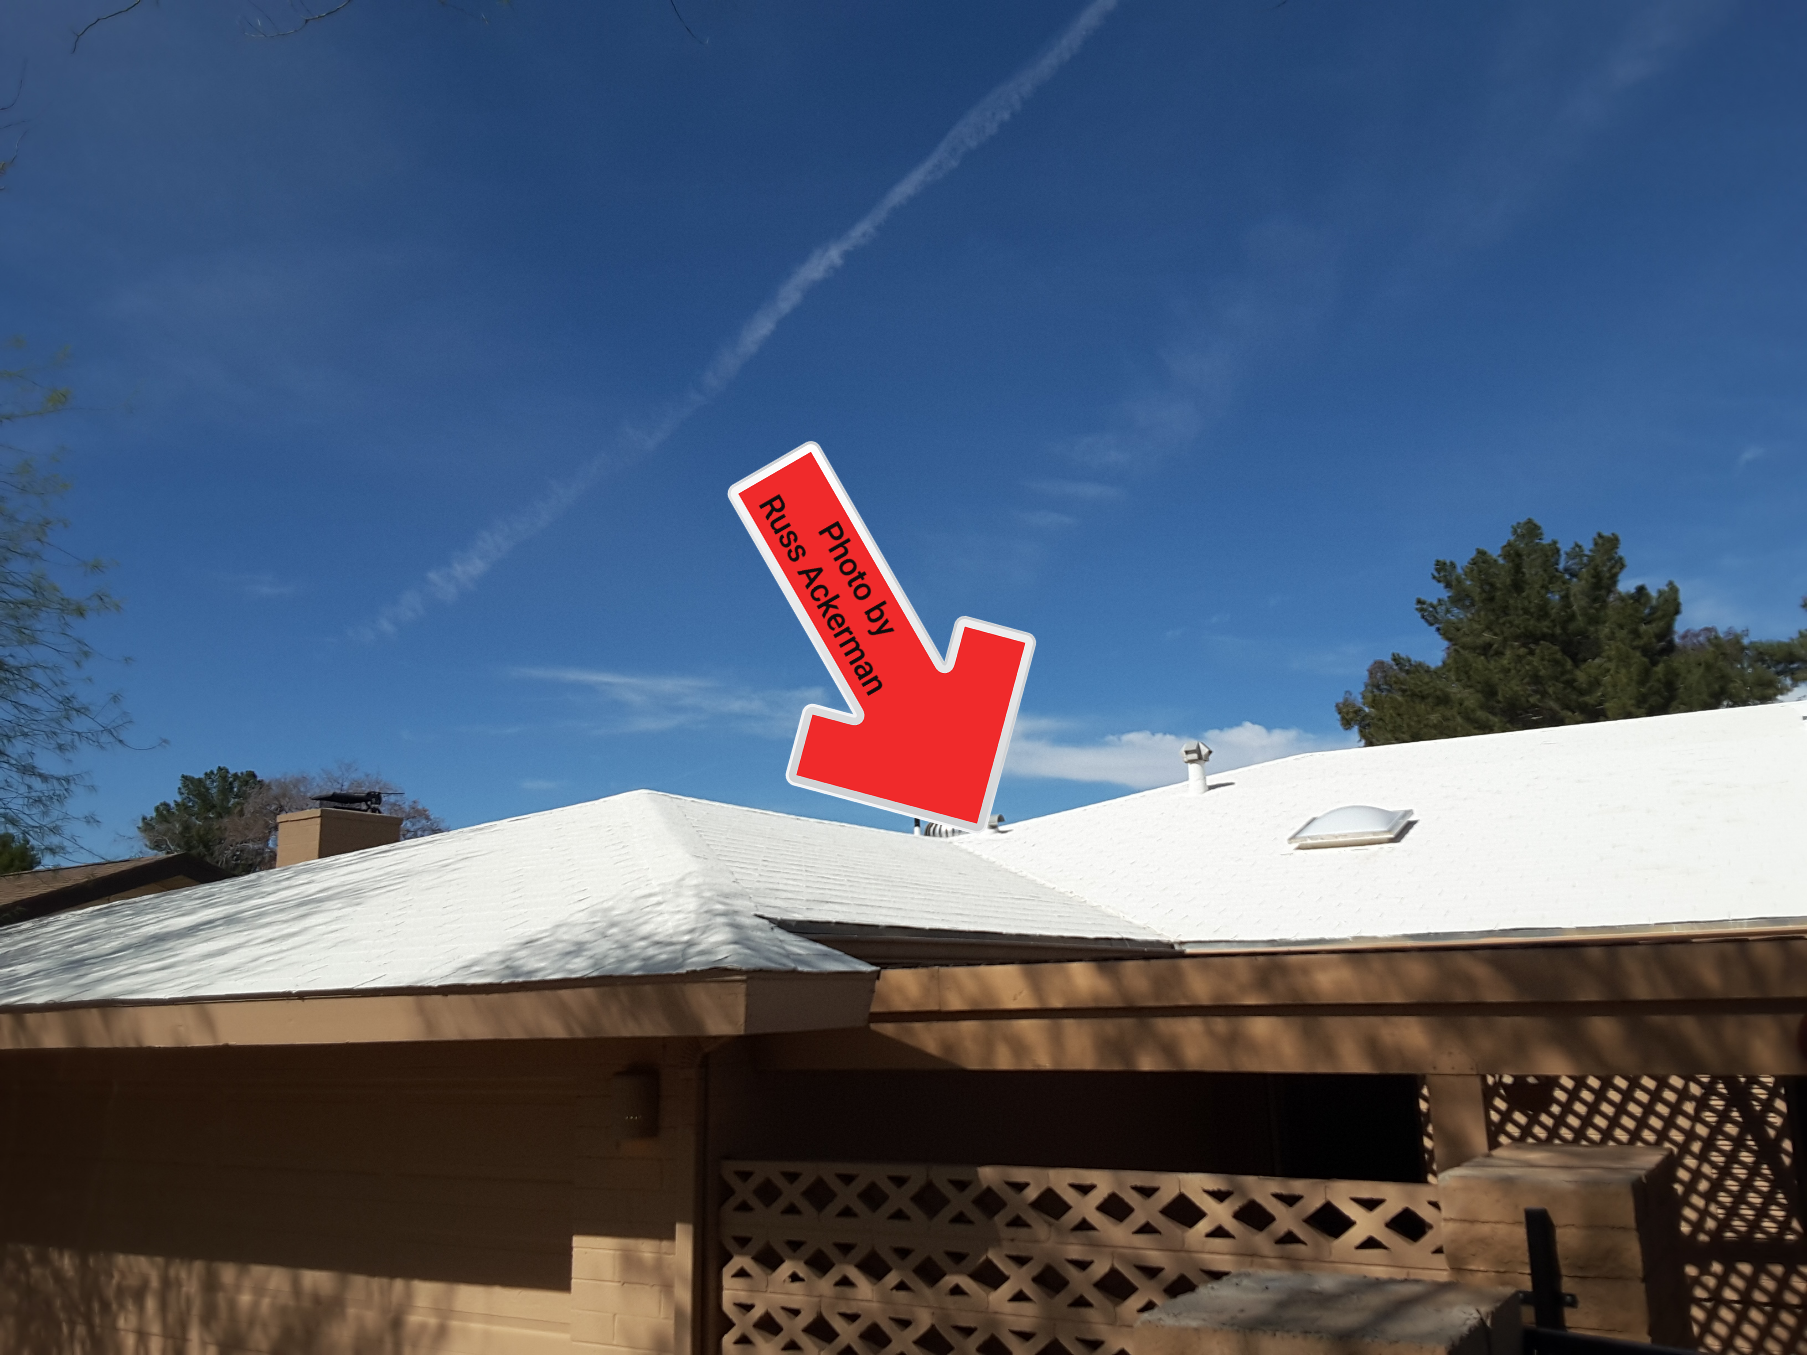 Elastomeric paint greatly limits a roof inspection and may void your manufacturers warranty. Always check before using these products.